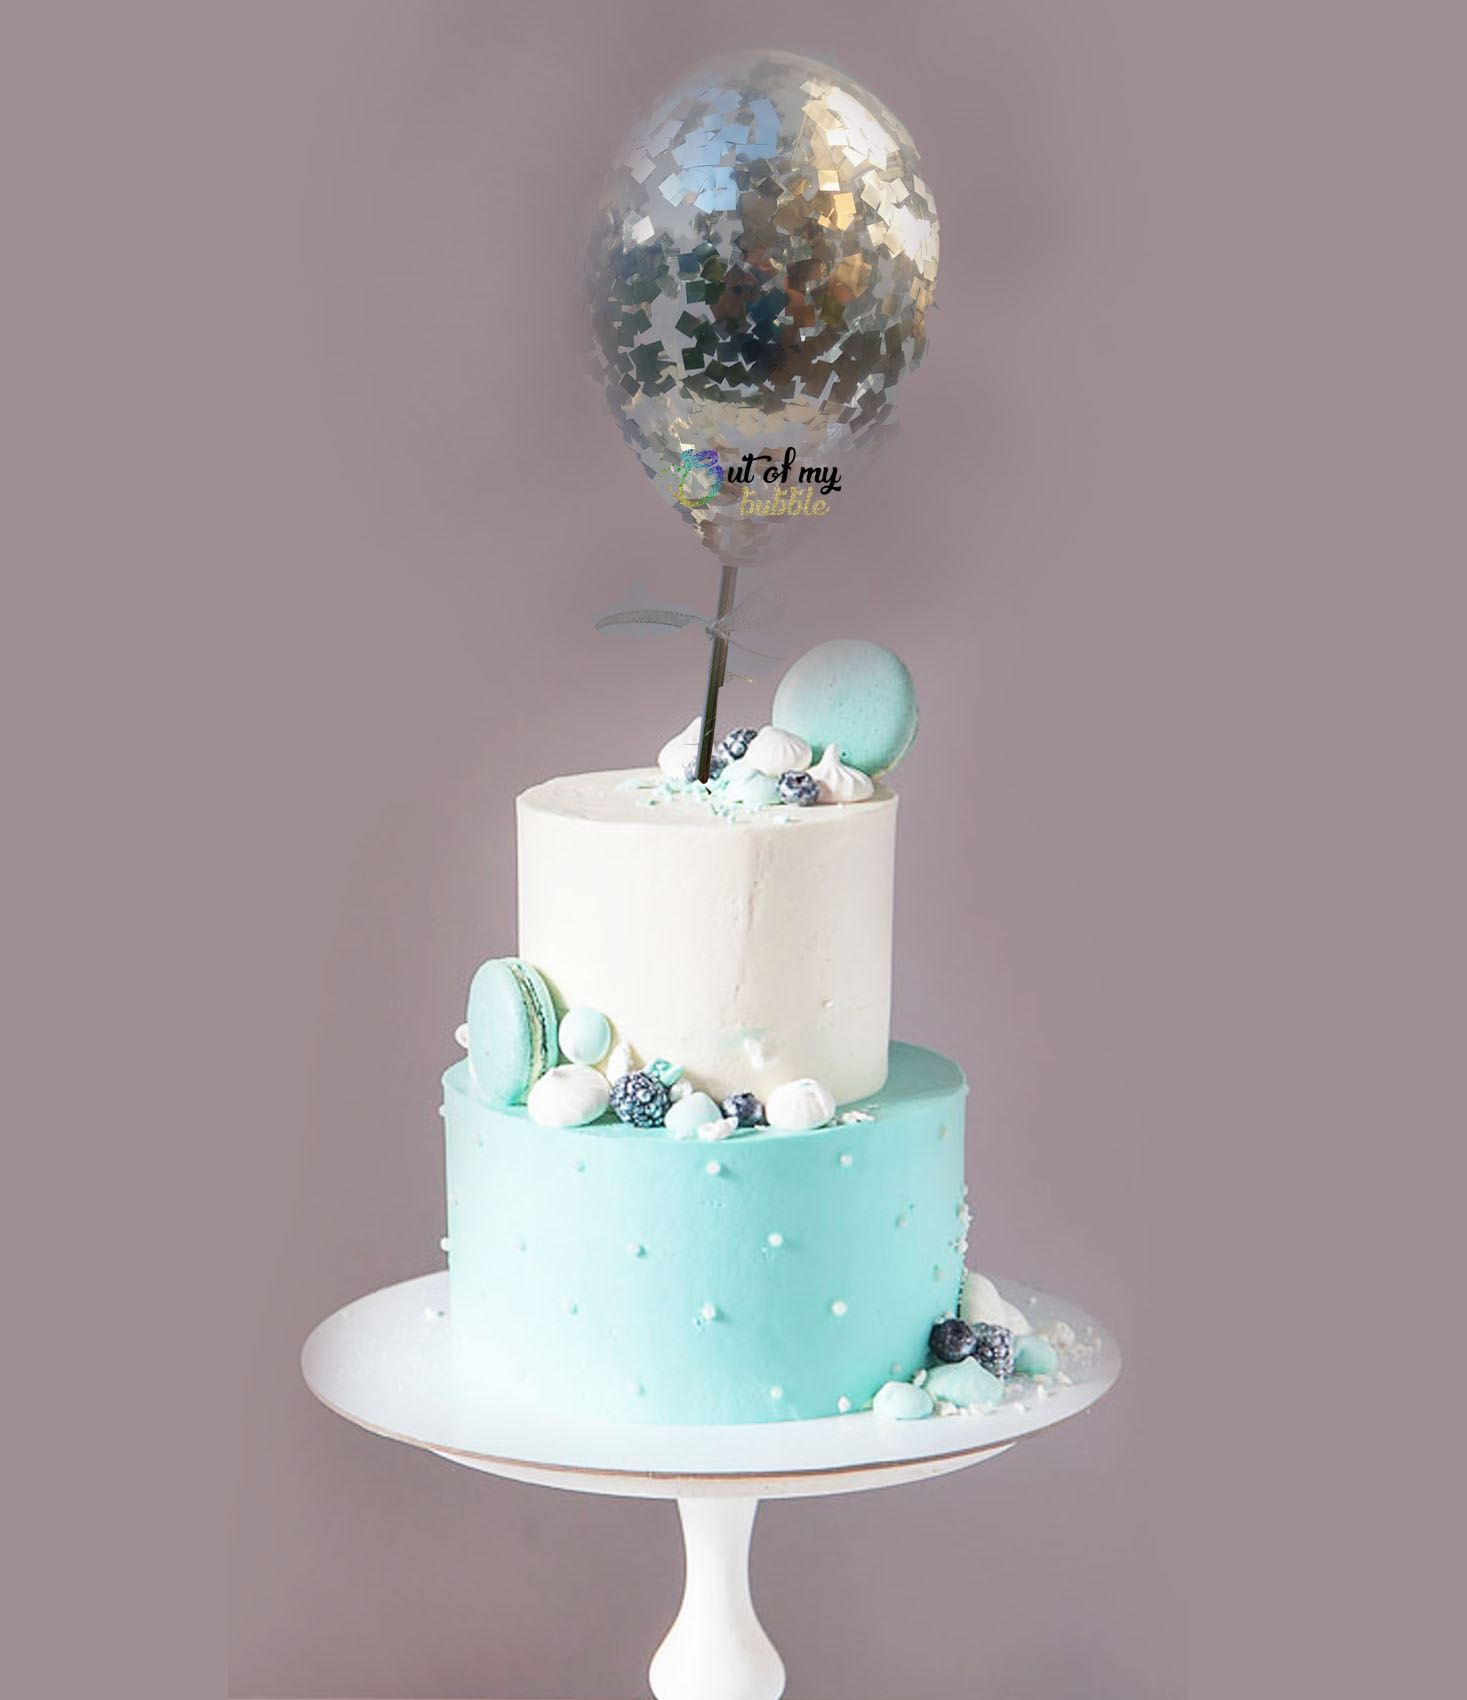 Swell Outofmybubble Silver Confetti Balloon Cake Topper Birthday Personalised Birthday Cards Paralily Jamesorg